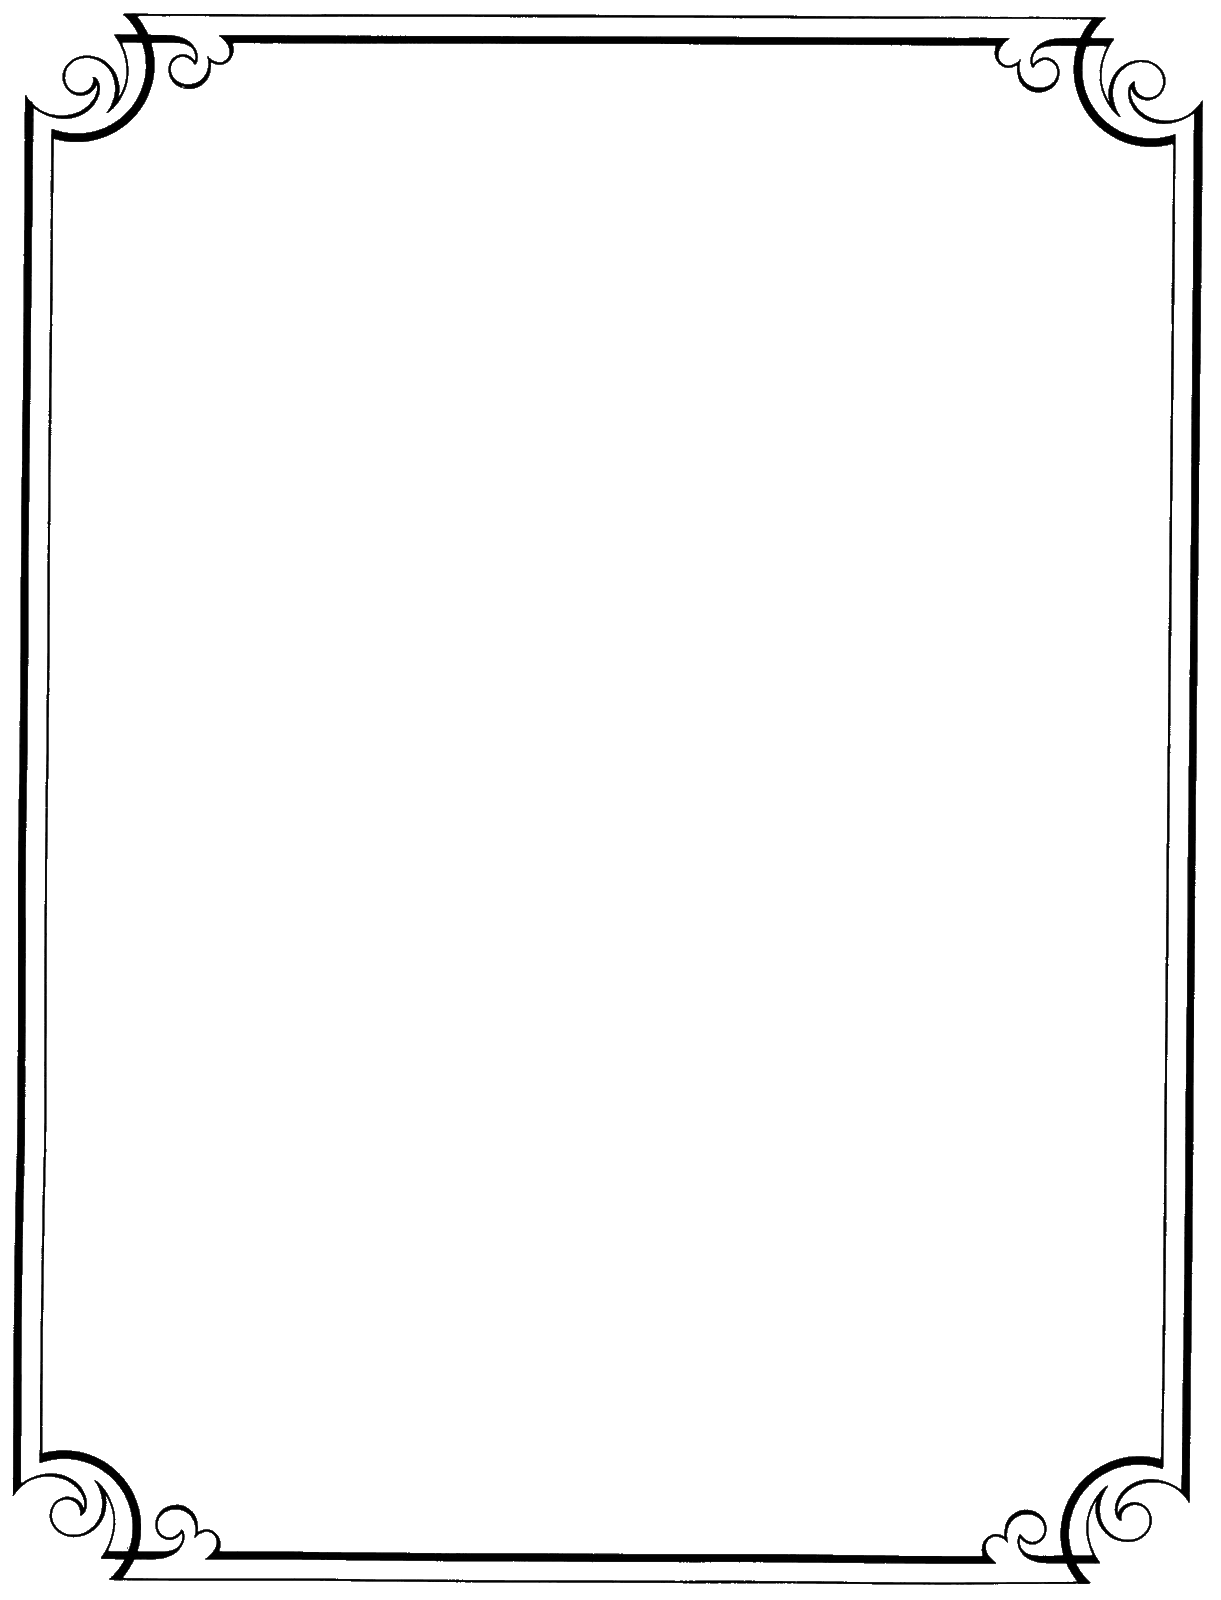 Borders transparent images pluspng. Fancy black border png image library library